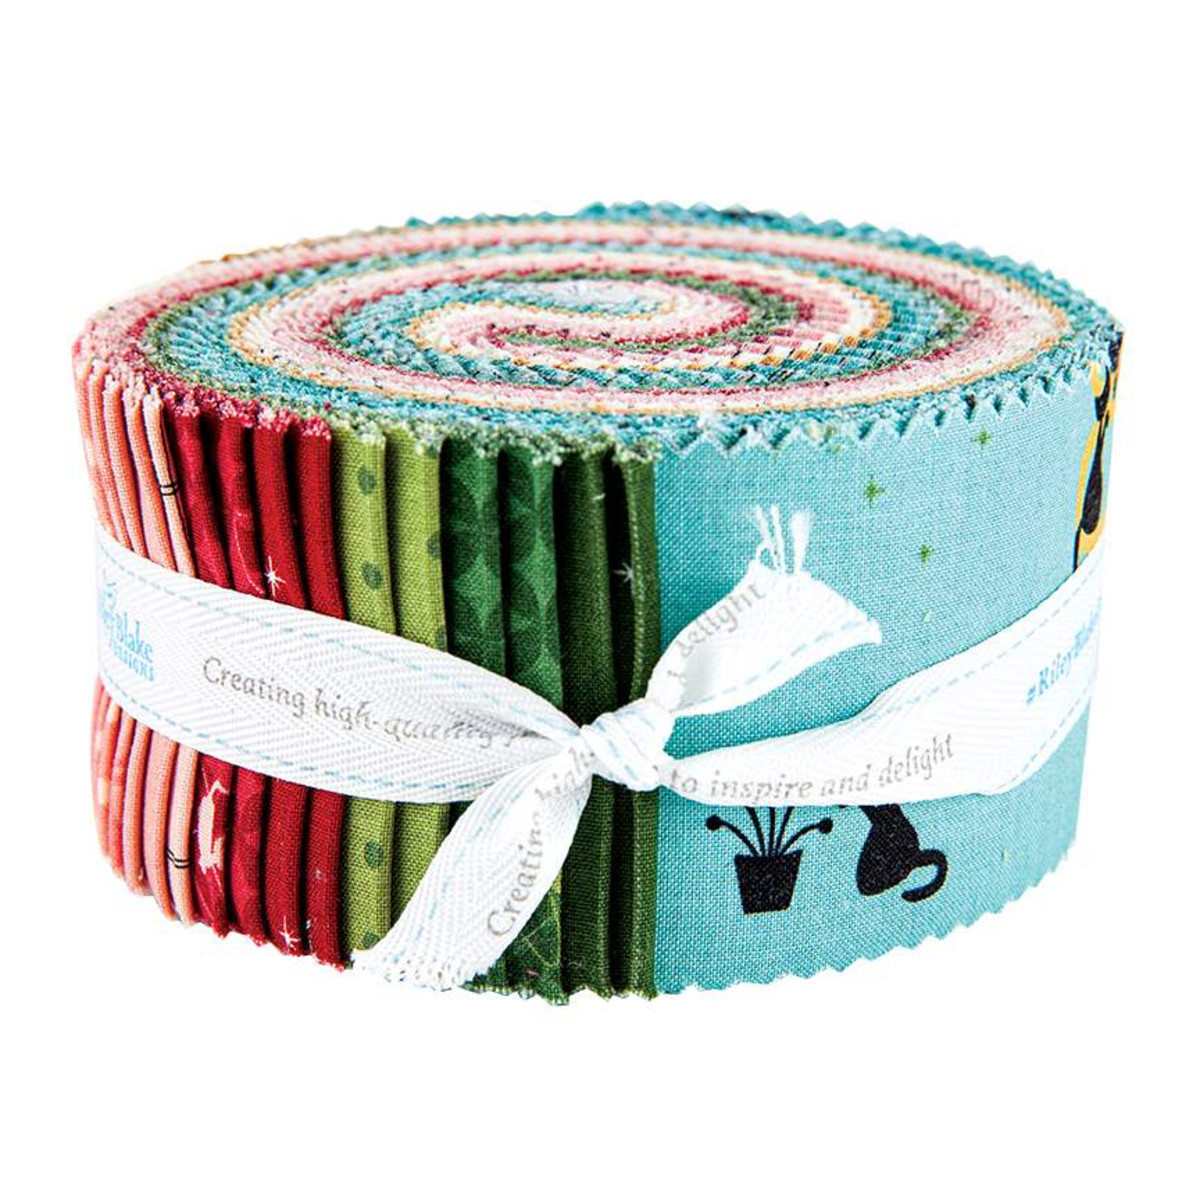 Riley Blake Jelly Roll - Mod Meow by Amanda Niederhauser